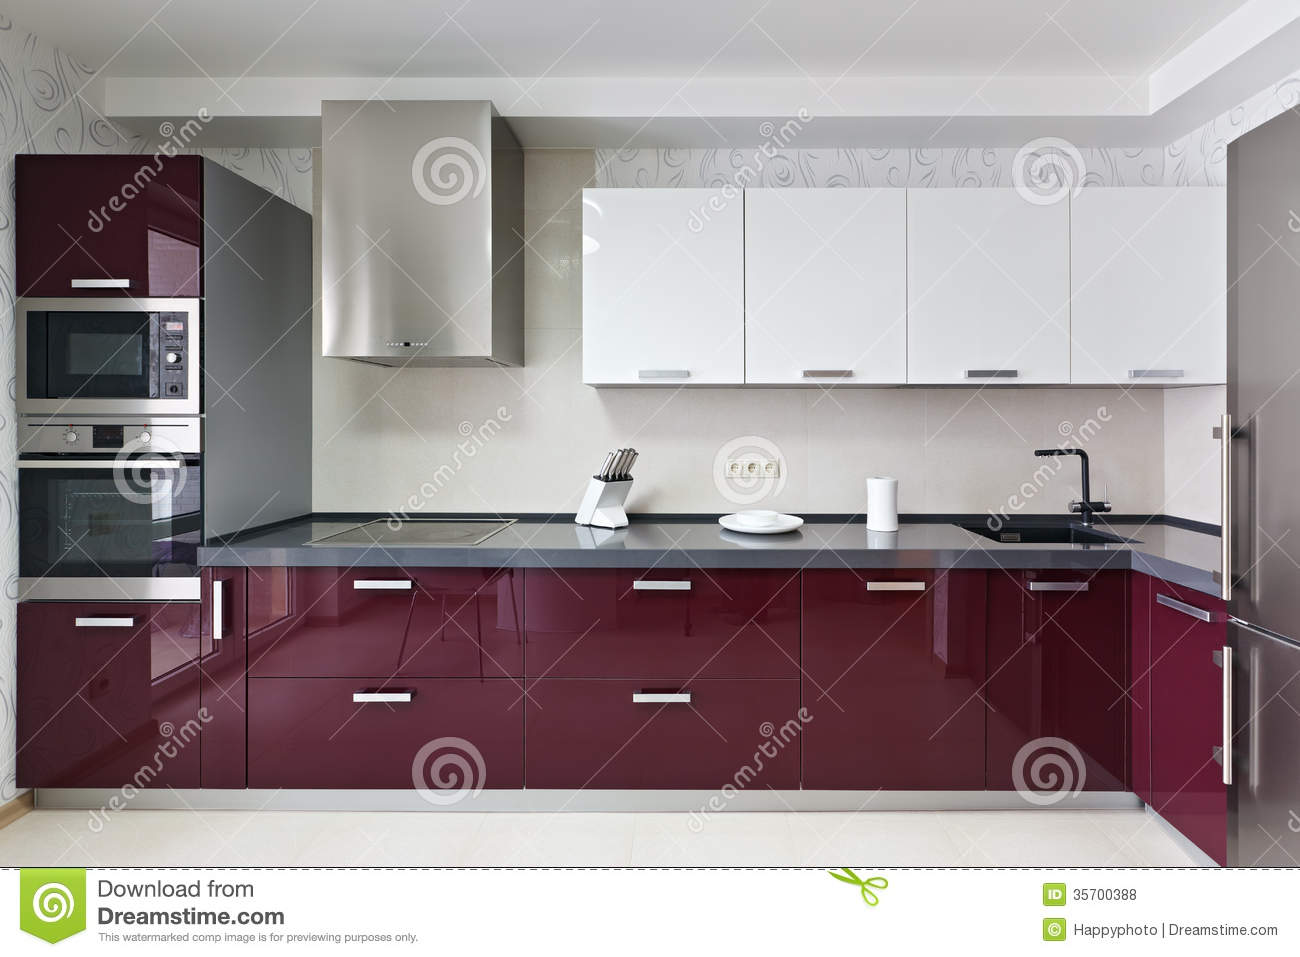 Modern kitchen interior stock photo. Image of knife, home - 9